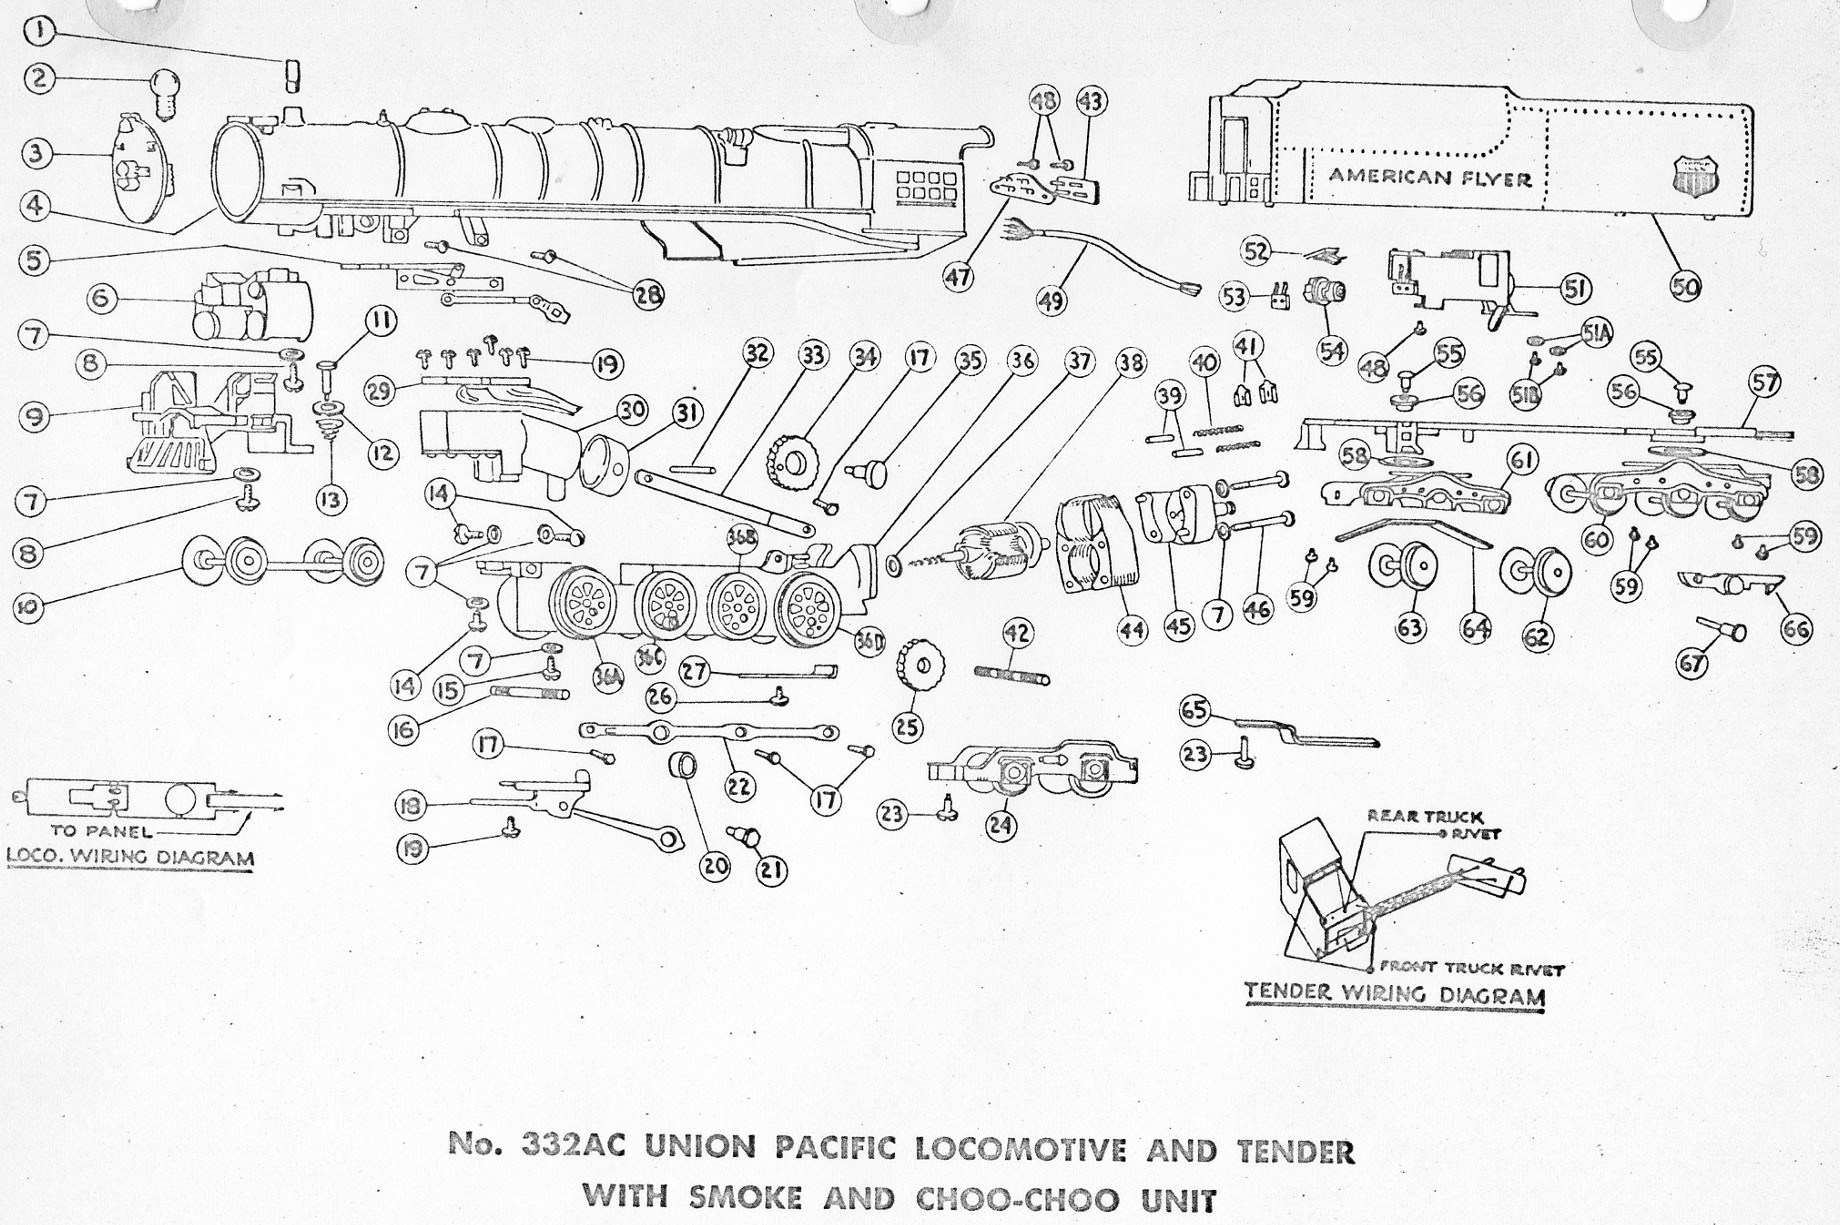 american flyer locomotive 332ac parts list  u0026 diagram